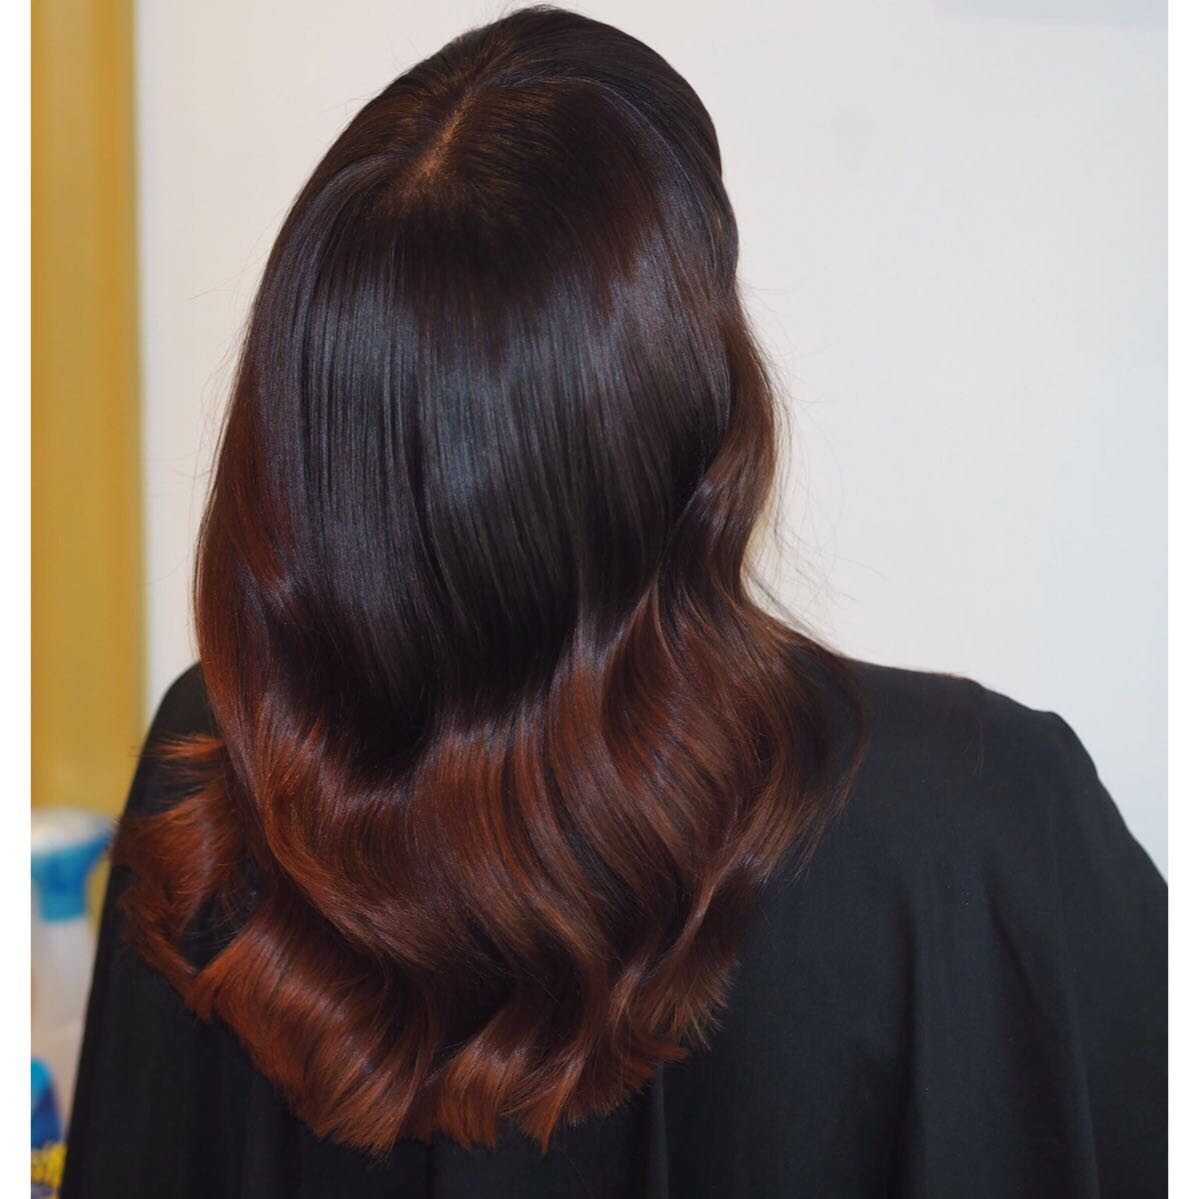 This was the colour that Sofie did yesterday. And depth and red tones for a beautiful balayage effect.  The client was absolutely delighted 👍🏻 No extensions were applied.  Just natural hair.jpeg